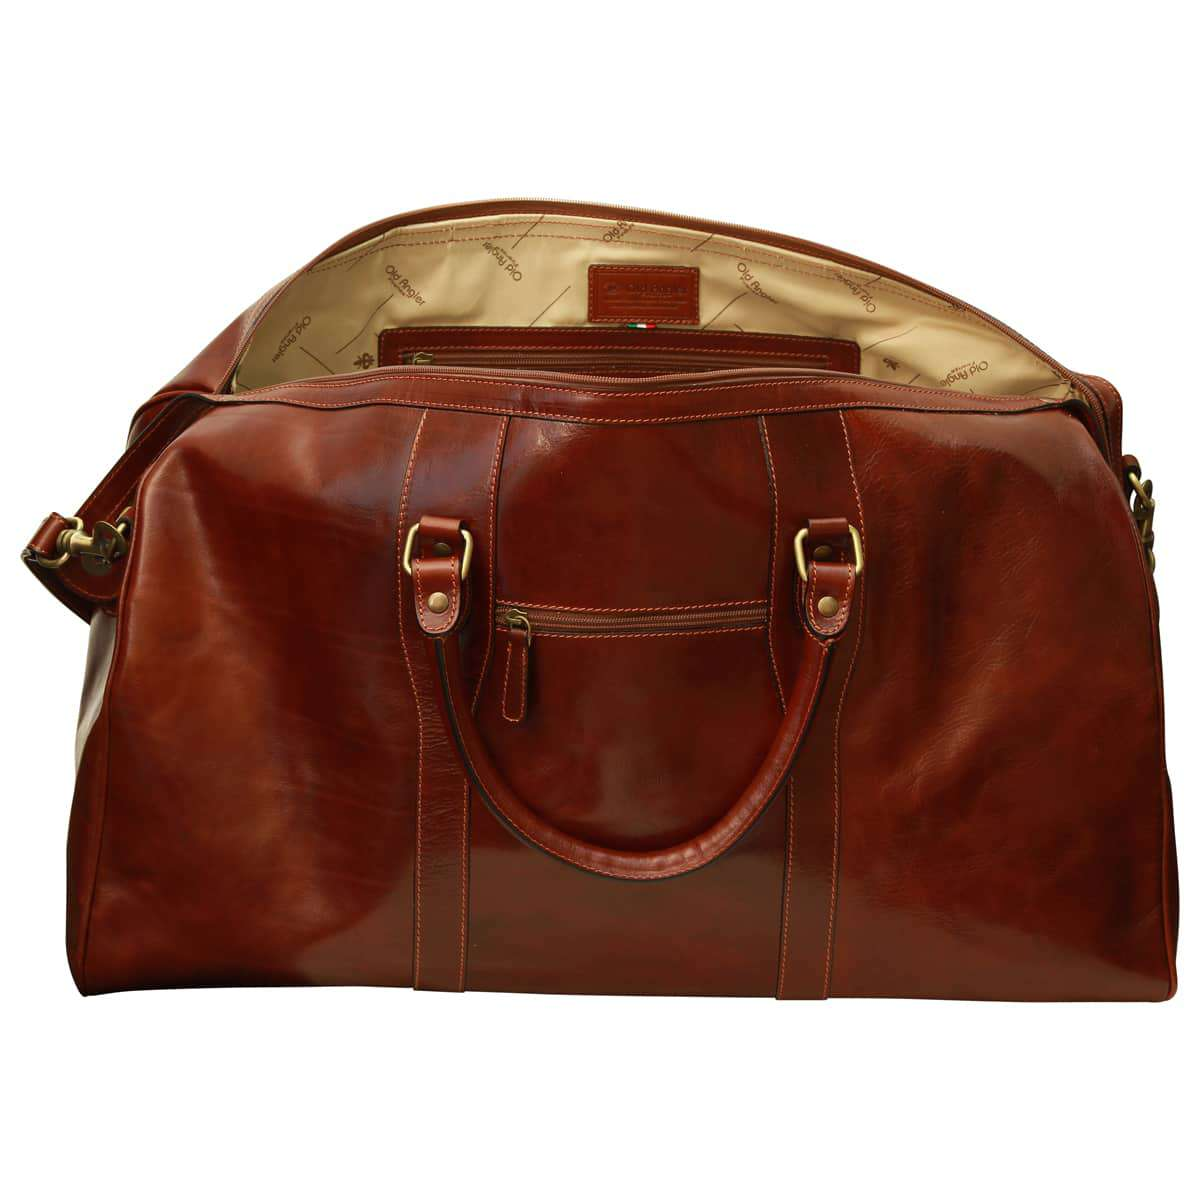 Borsa da viaggio per il weekend. Marrone | 107405MA | Old Angler Firenze